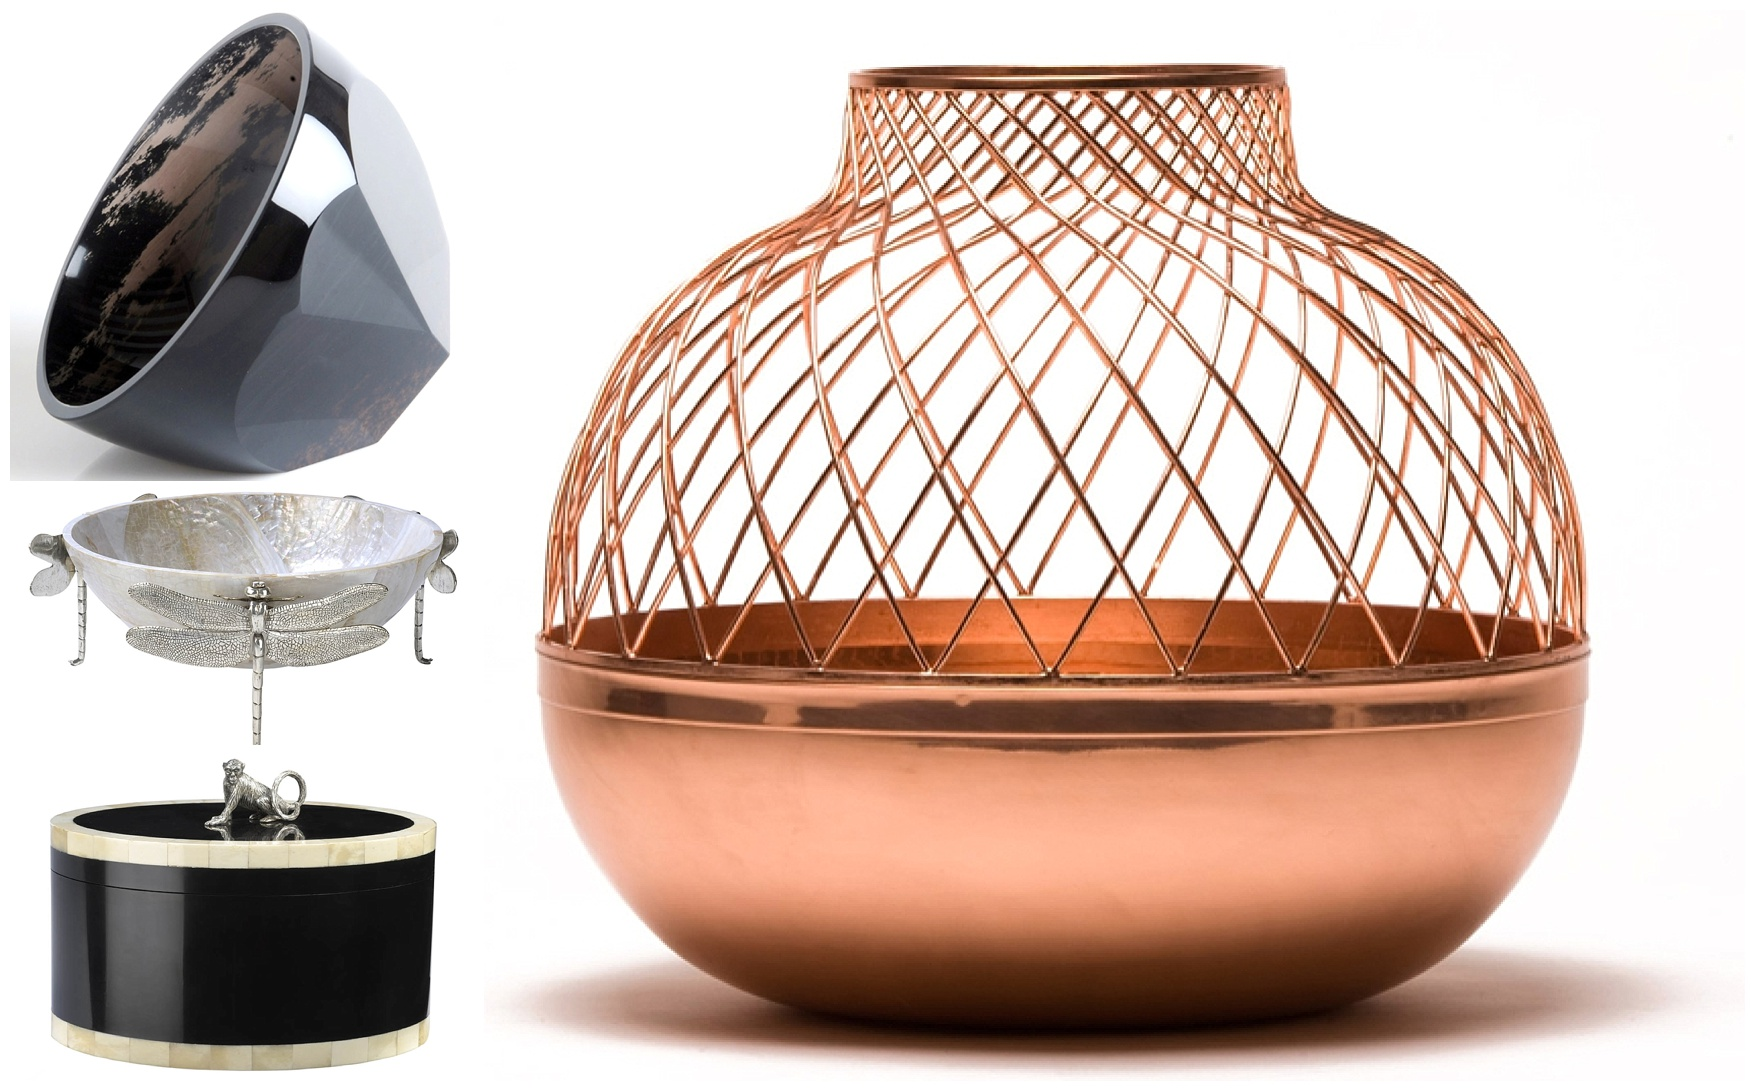 Dzovassar Bowl Sculpture, Dragonfly Dish, Monkey Coco Oval Box, Round Copper Grid Vase - available on LuxDeco